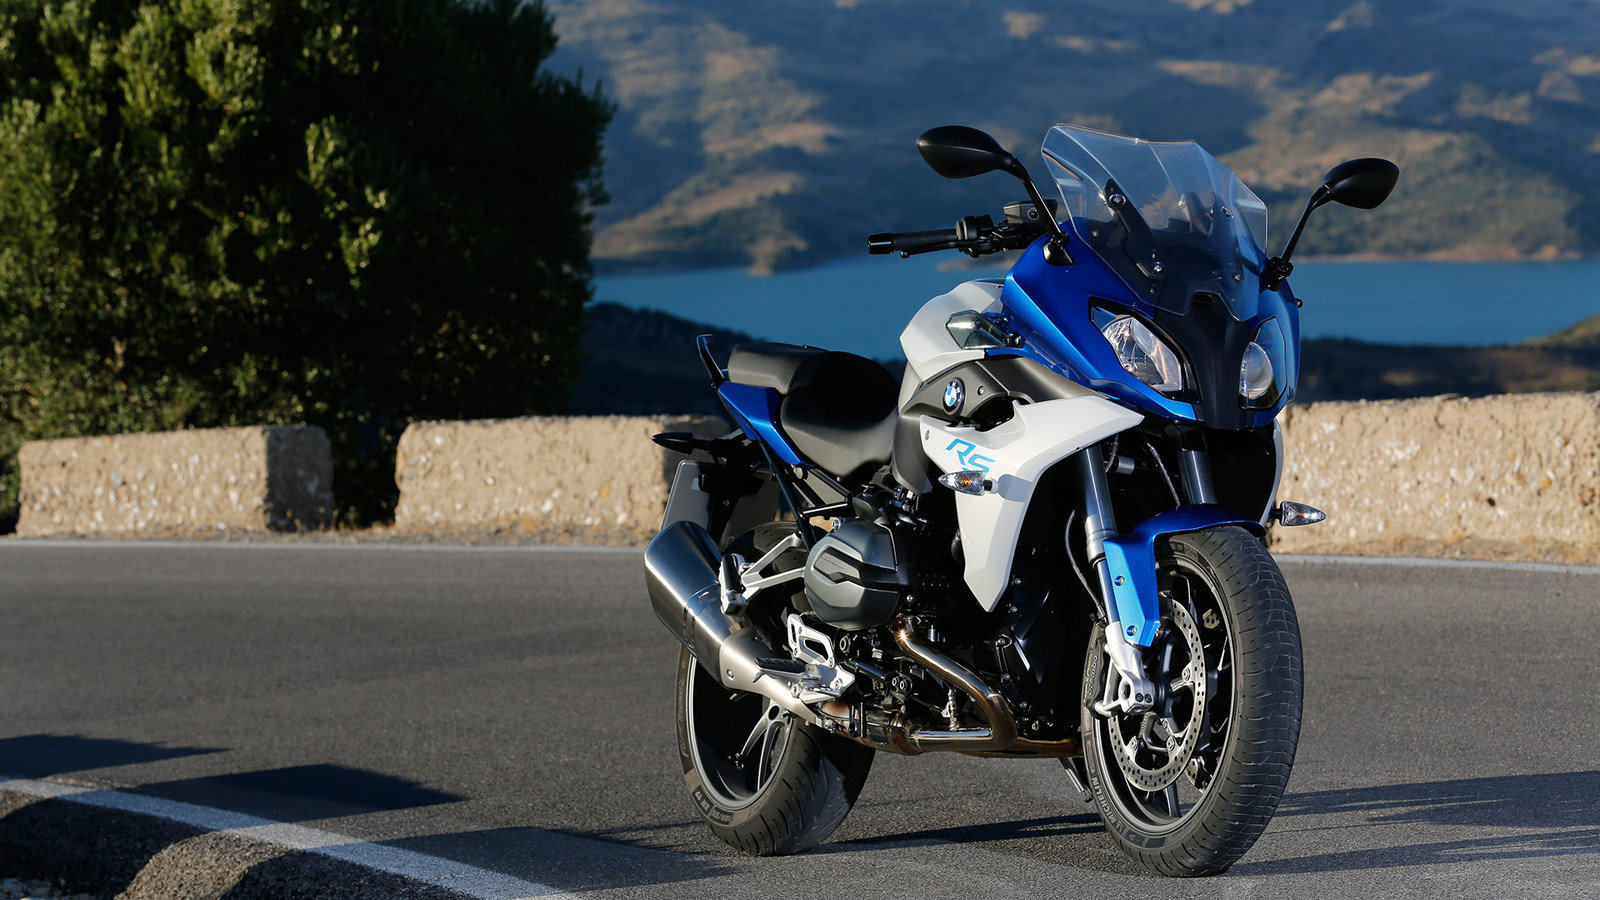 2015 2017 bmw r 1200 rs picture 650026 motorcycle review top speed. Black Bedroom Furniture Sets. Home Design Ideas